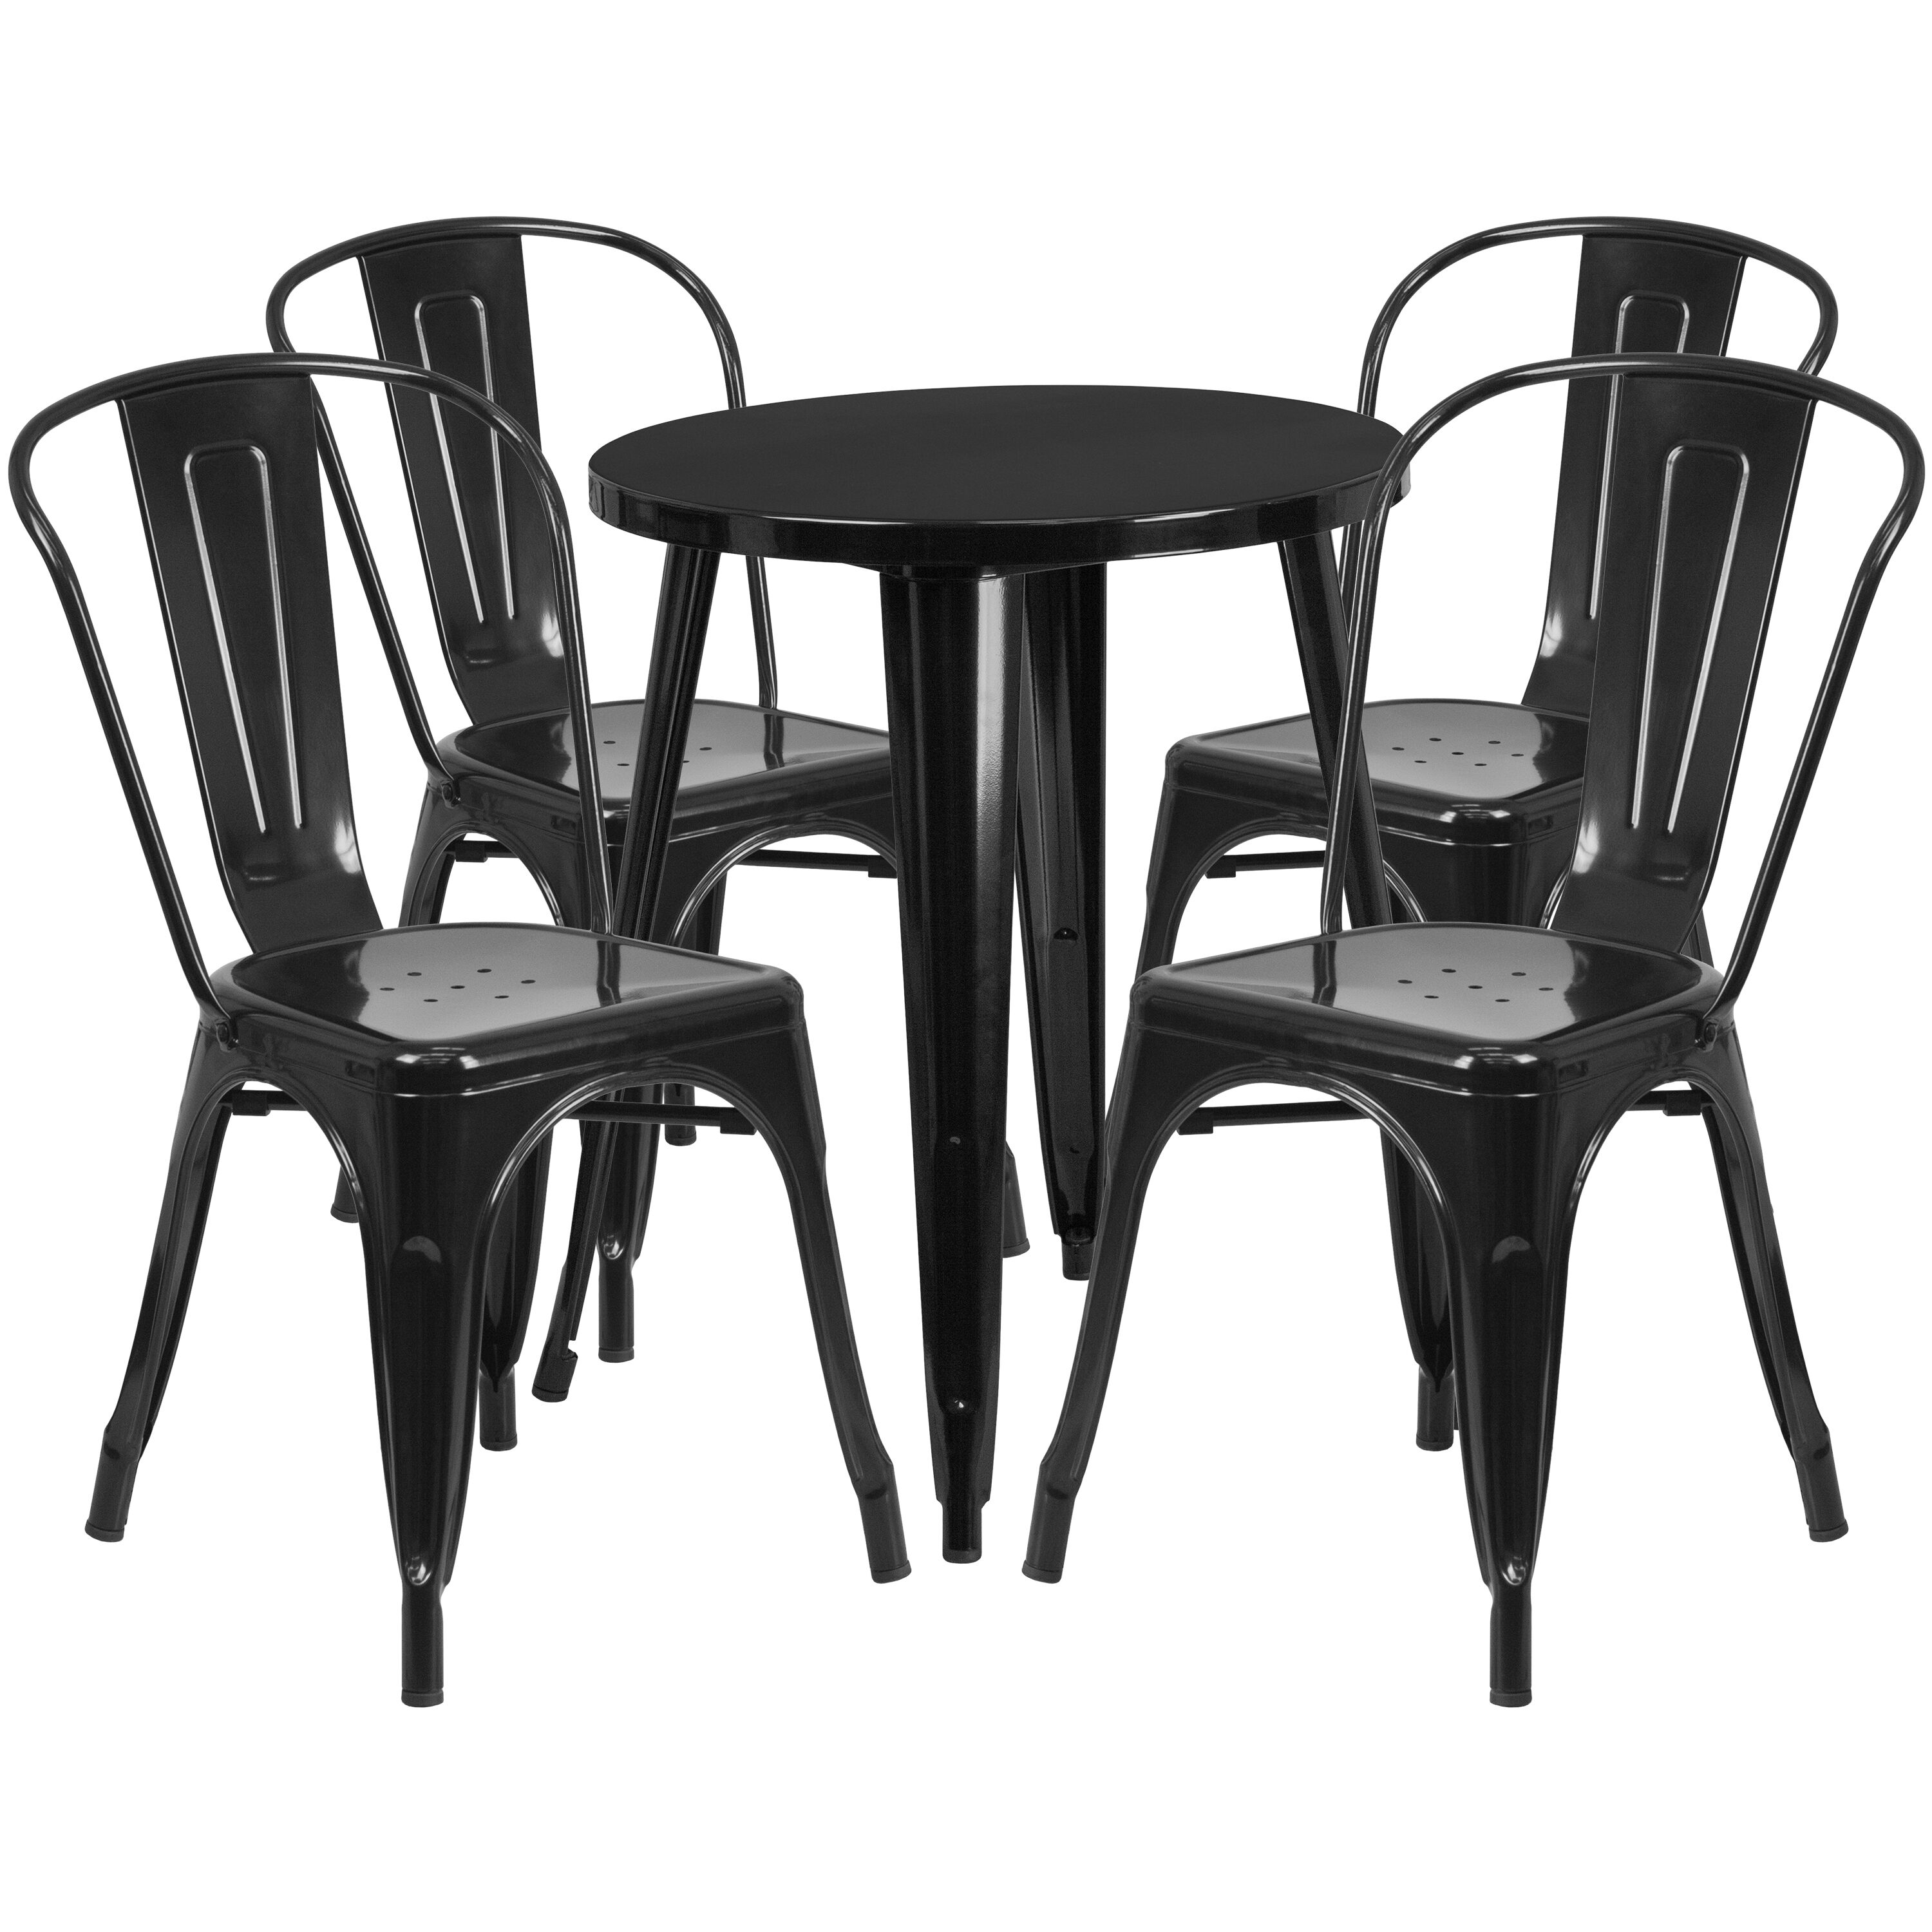 cafe chairs metal black chair covers target 24rd table set ch 51080th 4 18cafe bk gg restaurantfurniture4less com